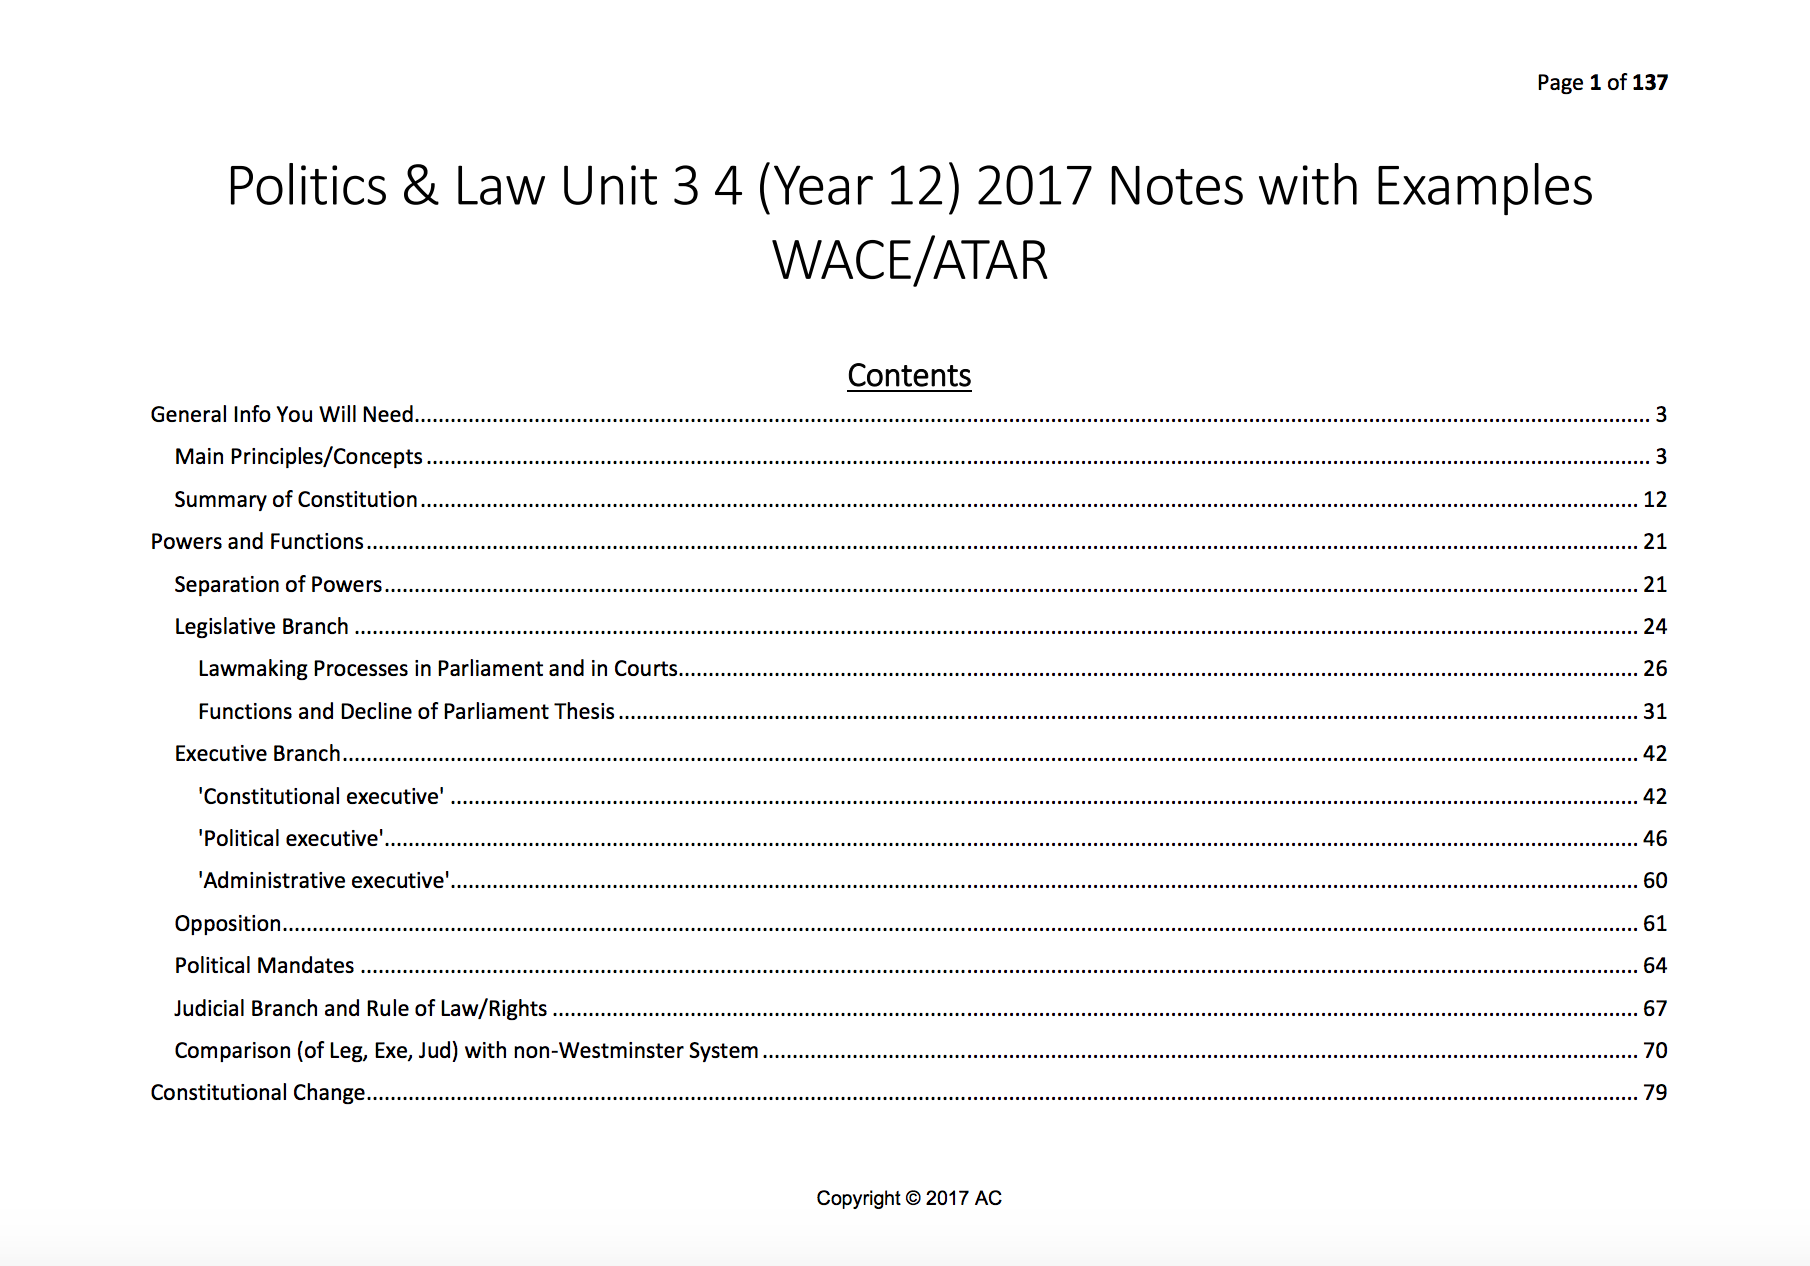 Politics & Law/Legal Studies Units 3/4 ATAR 2017 Notes